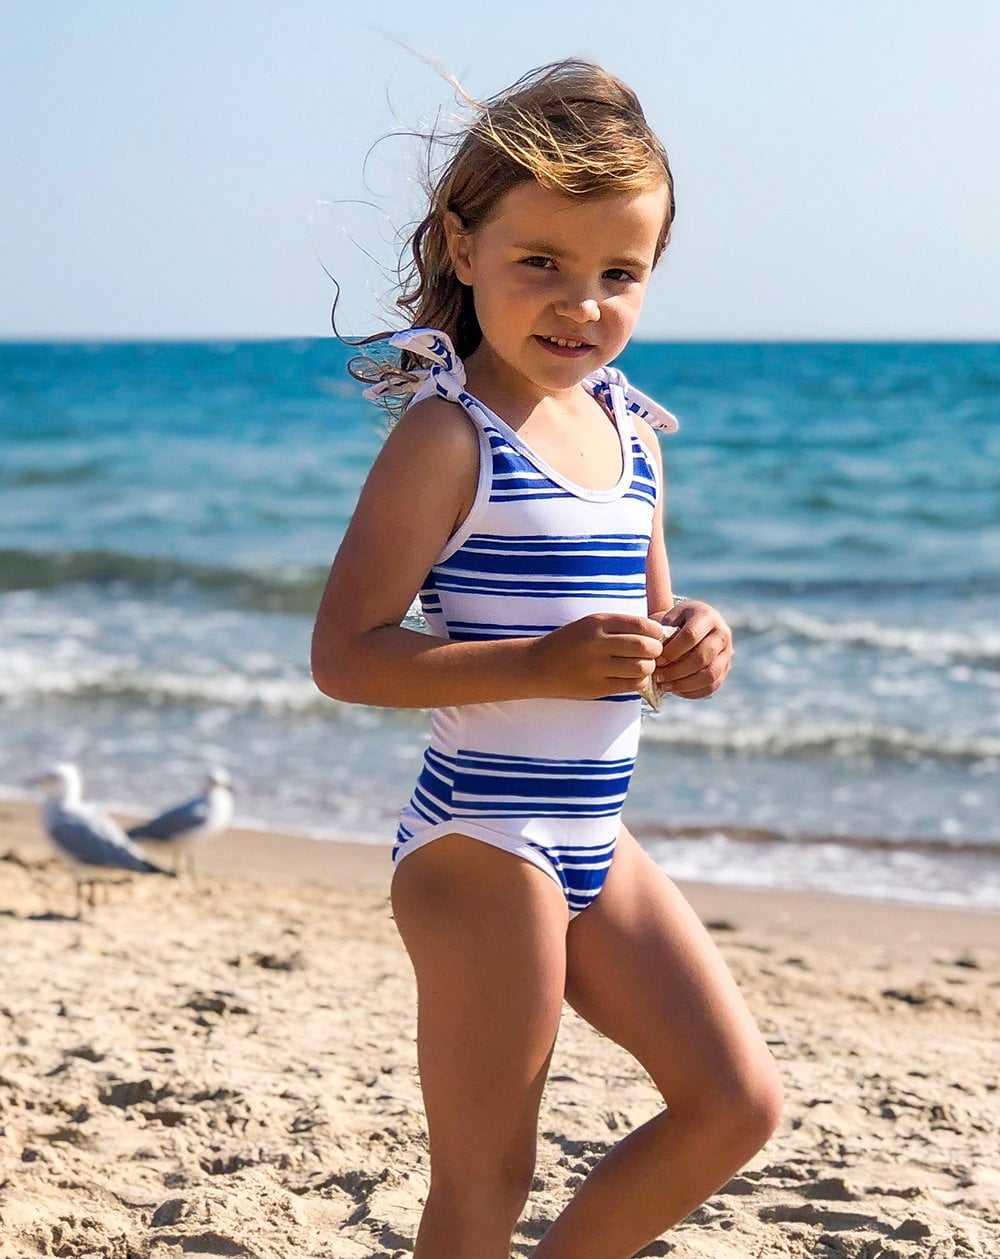 Seastripe Tie Swimsuits